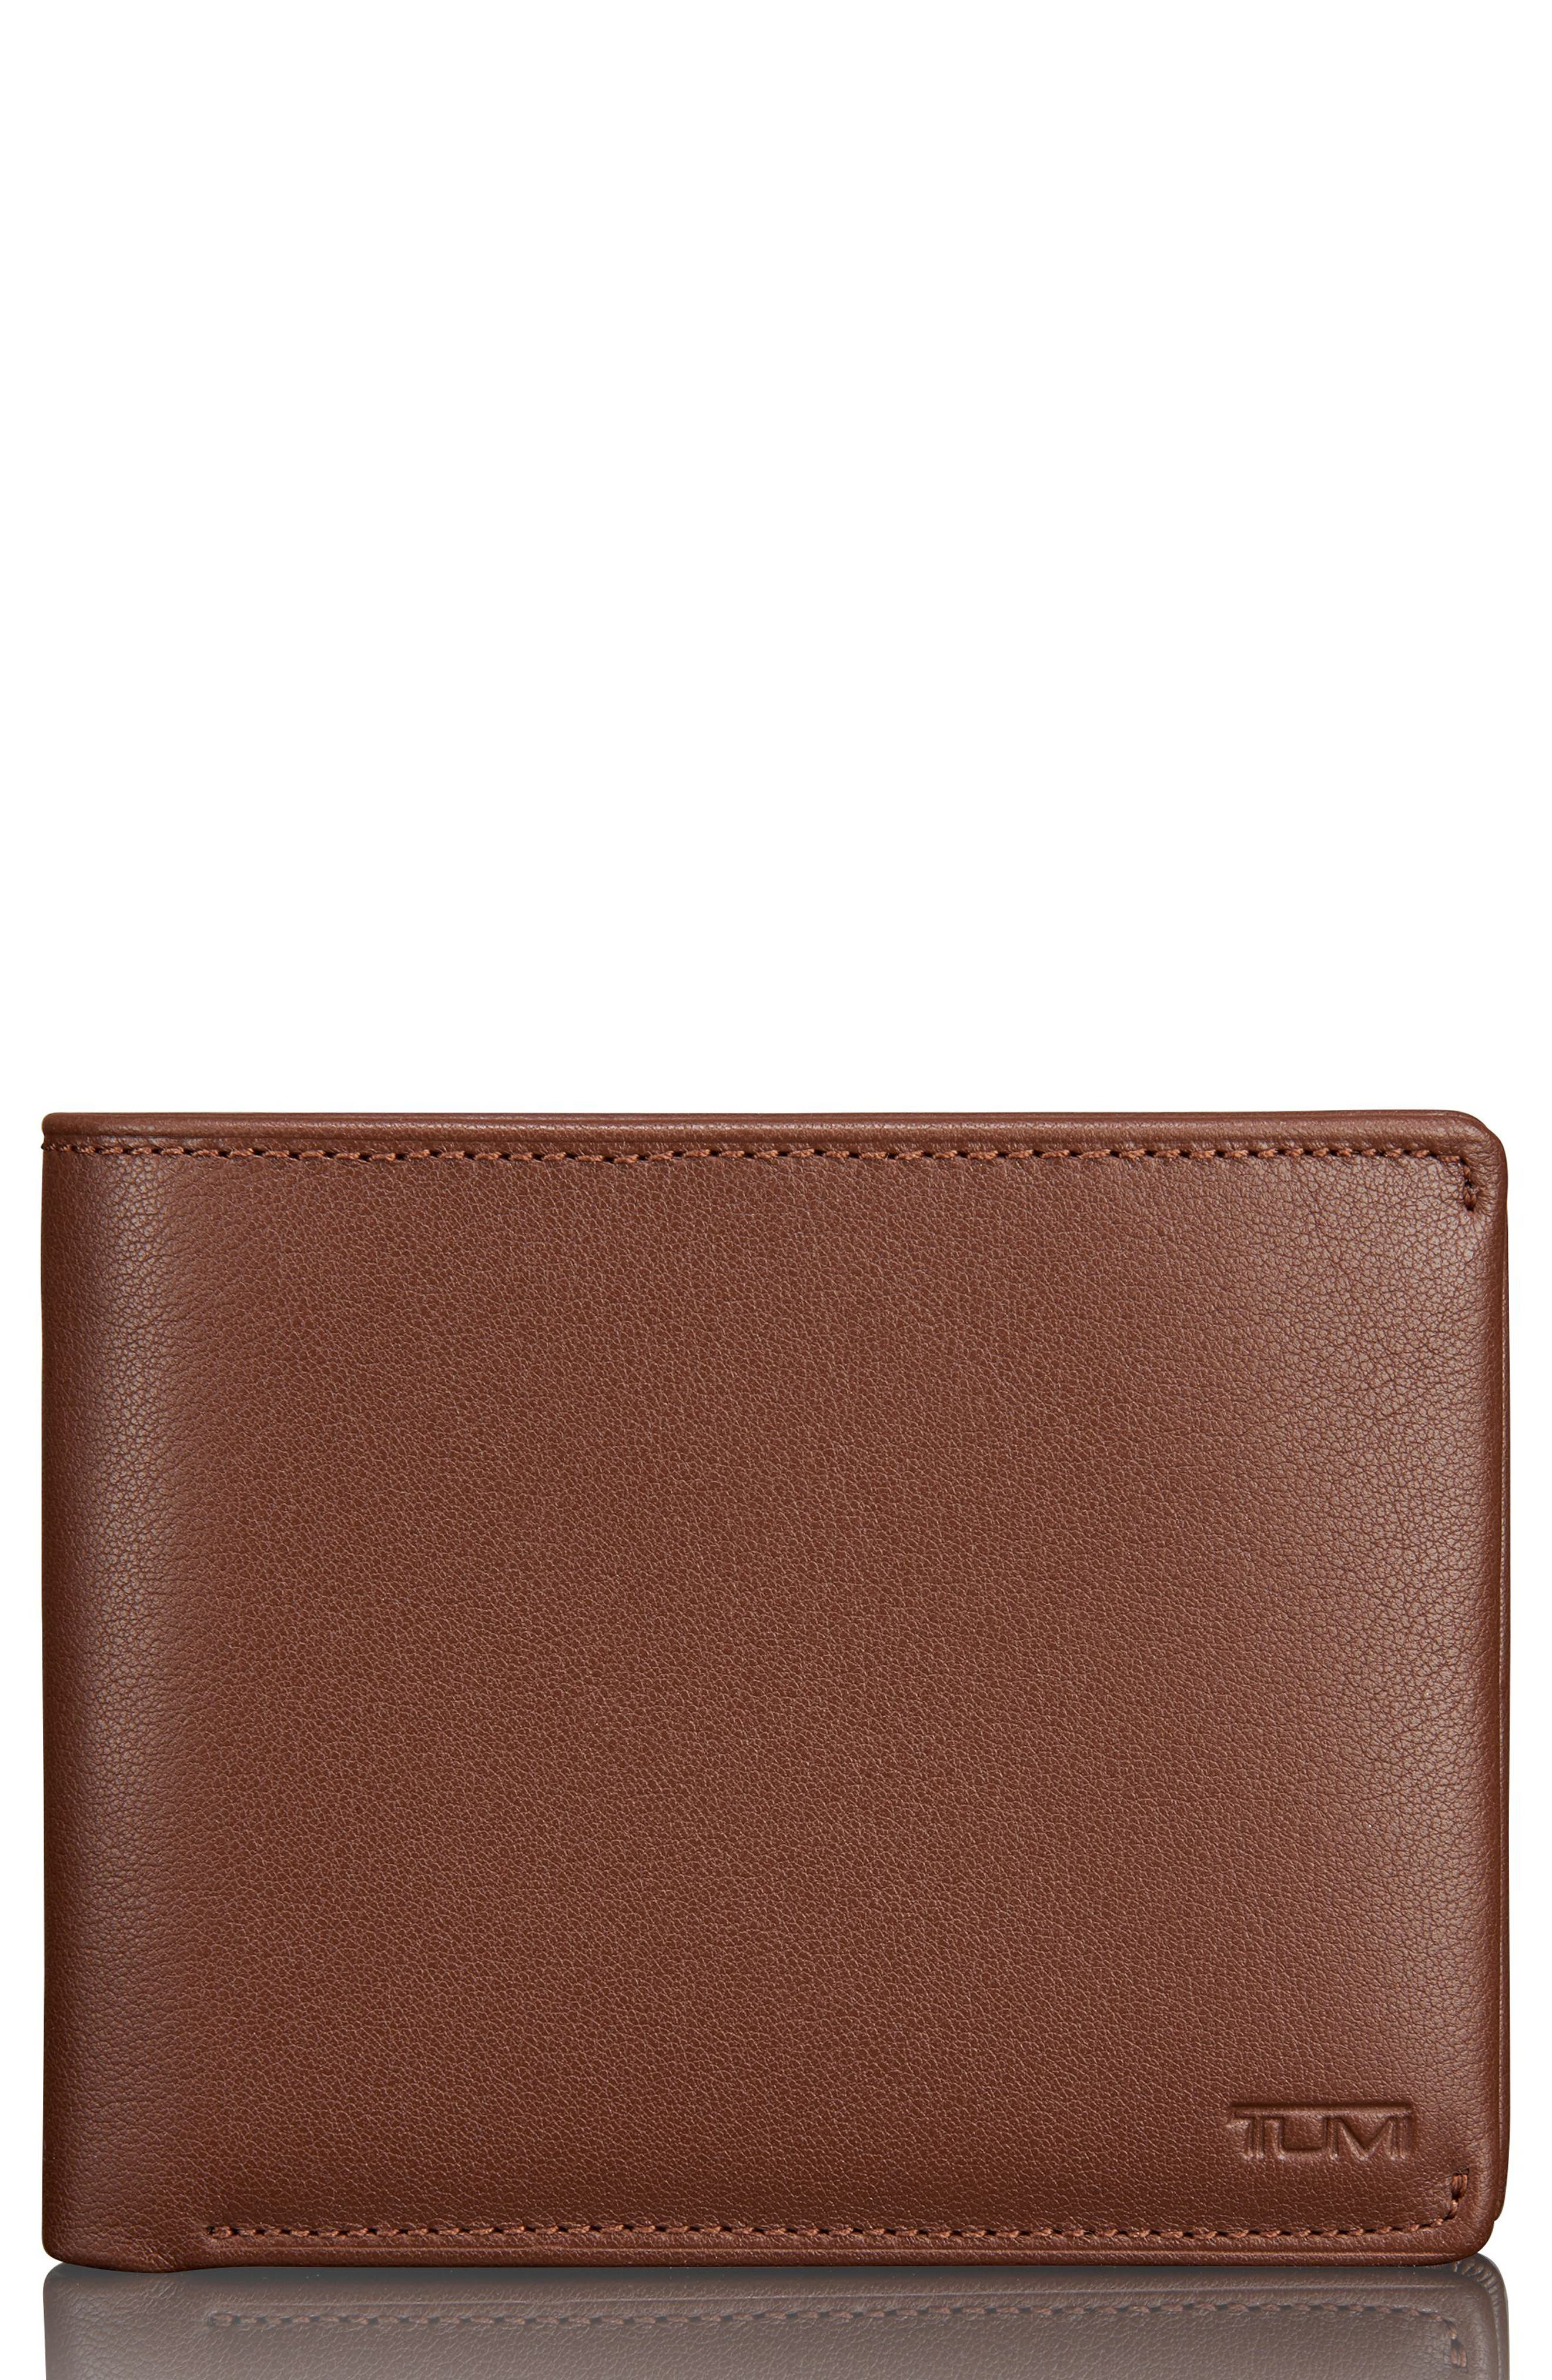 Global Passcase Wallet,                             Main thumbnail 1, color,                             Brown Textured